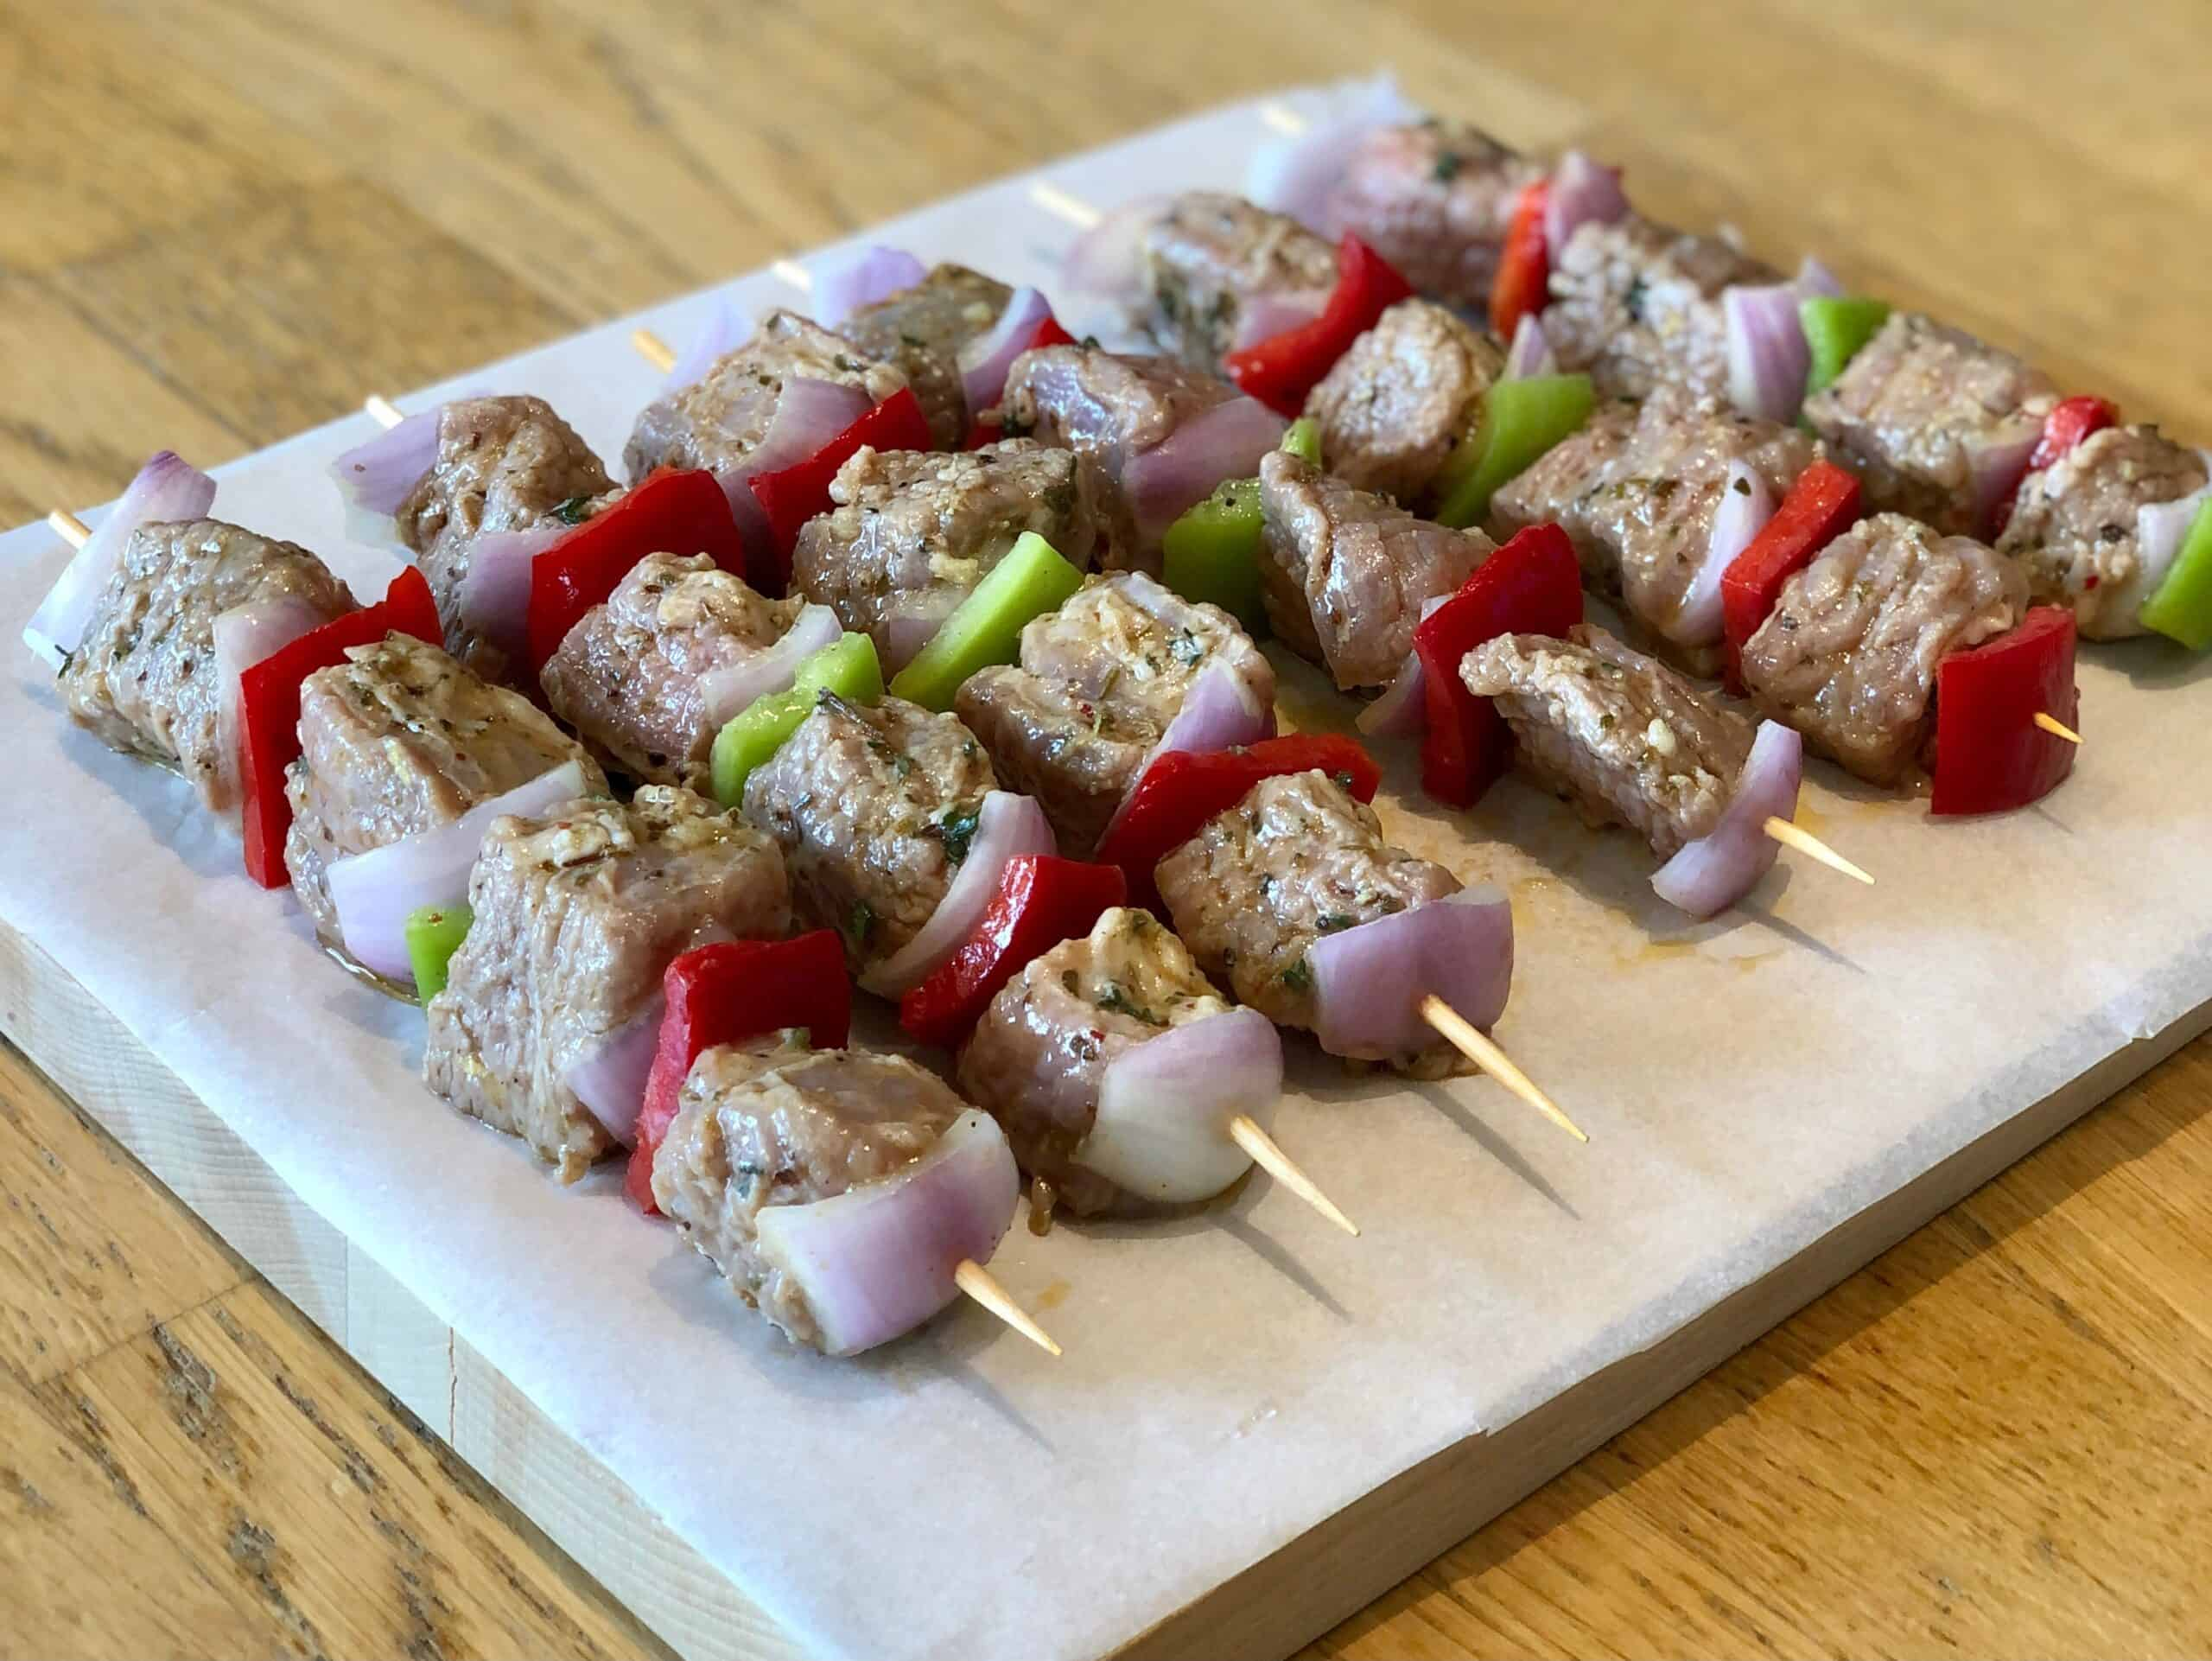 Marinated Greek Beef Souvlaki Skewers (Beef Kabobs) ready to grill